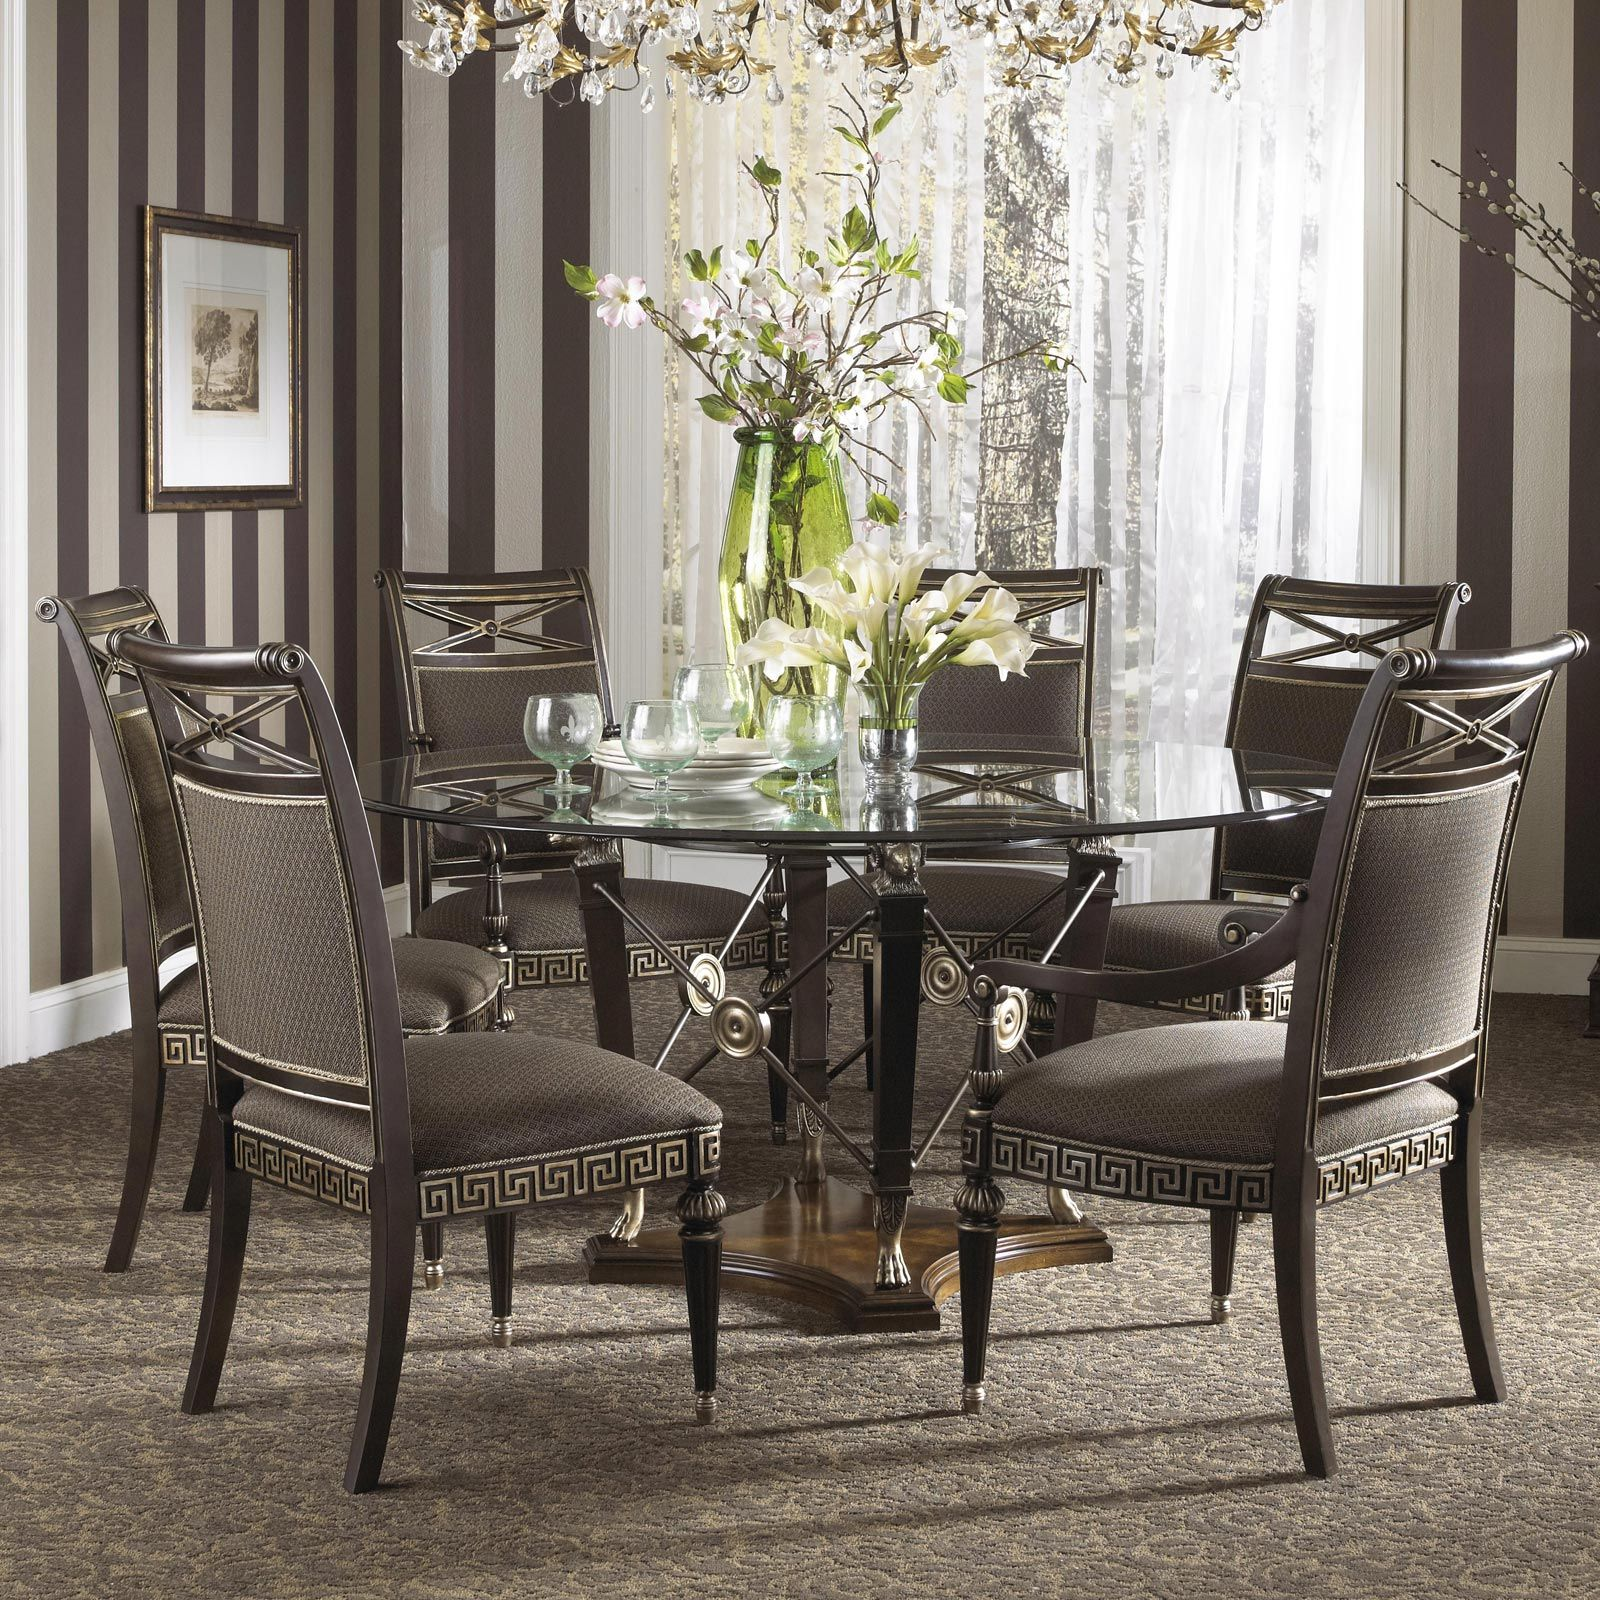 Formal dining room tables and chairs - Formal Dining Room Chairs Dining Room Furniture Dining Tables Dinette Sets Dining Room